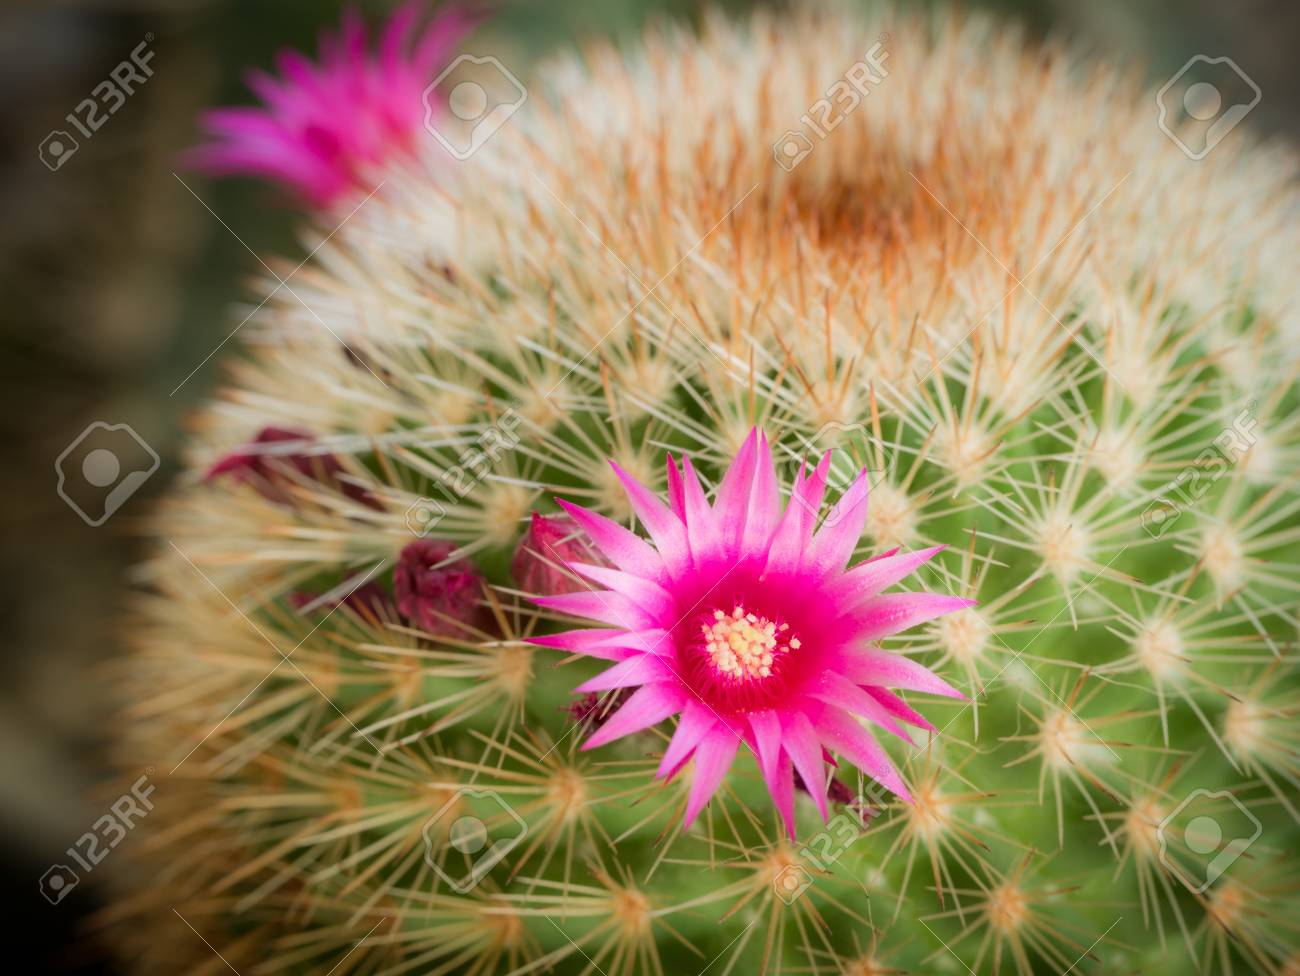 The Pink Cactus Flower Blooming In The Garden Stock Photo Picture